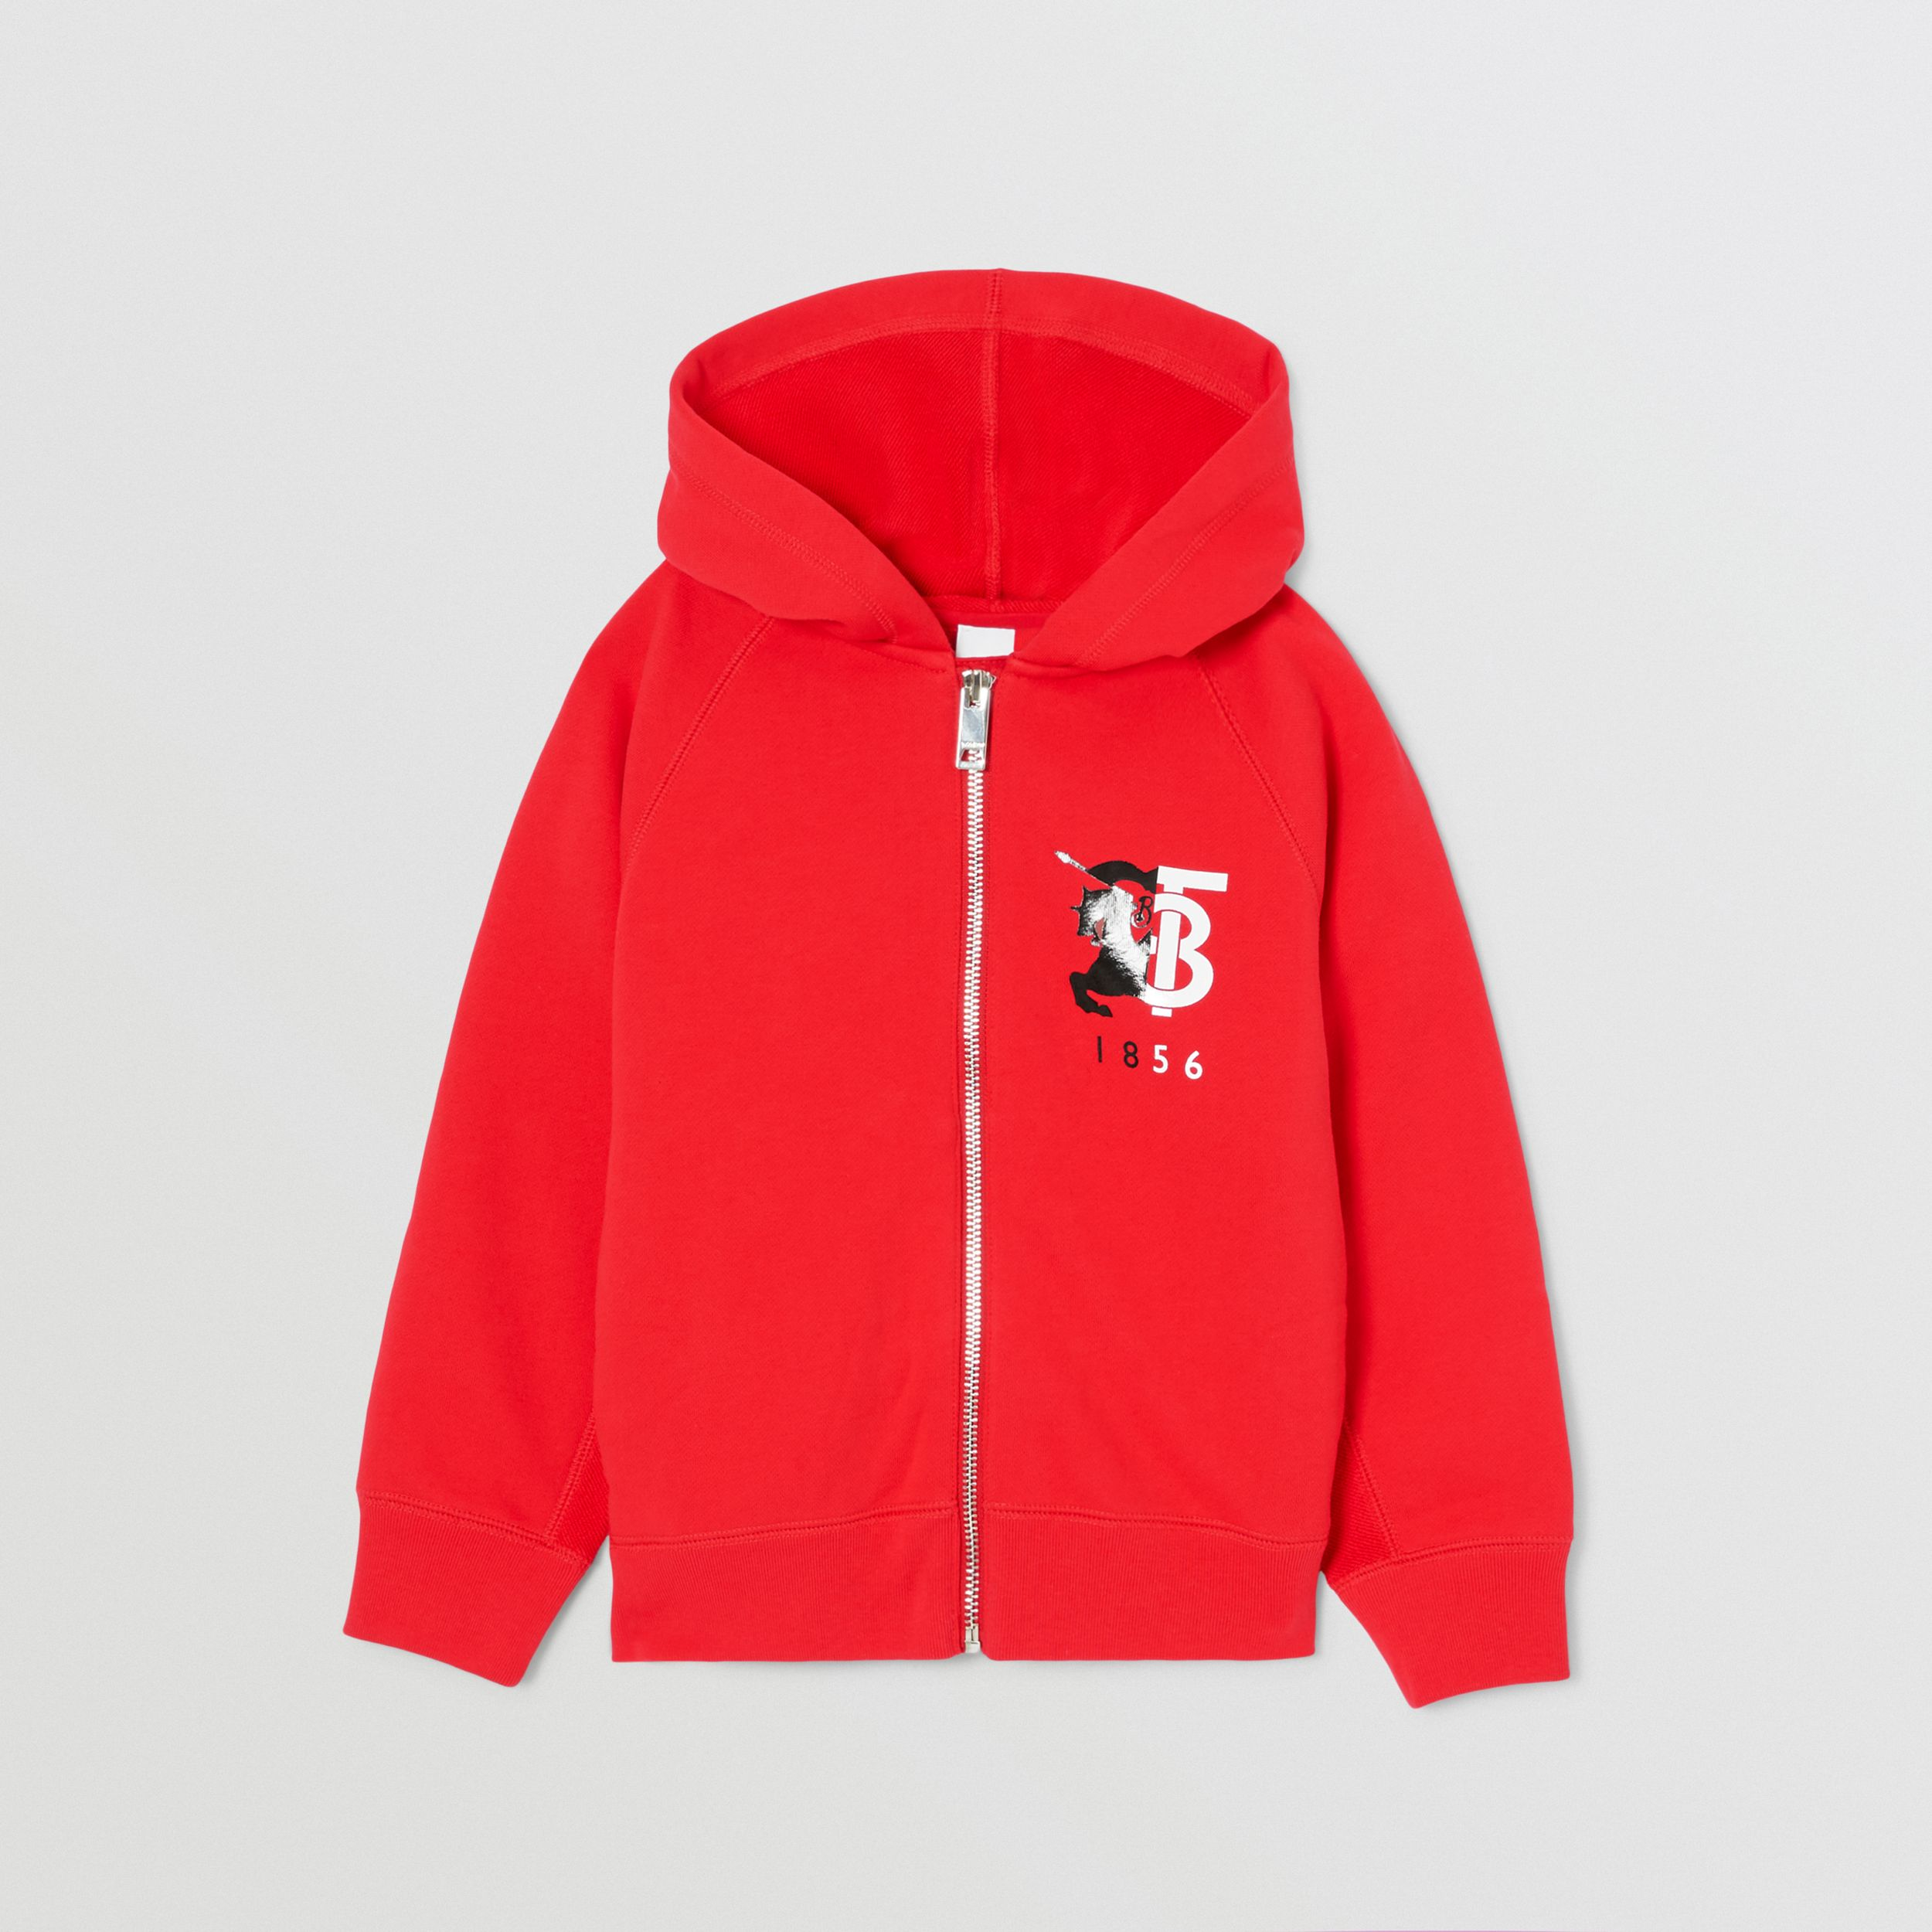 Contrast Logo Graphic Cotton Hooded Top in Bright Red | Burberry Hong Kong S.A.R. - 1